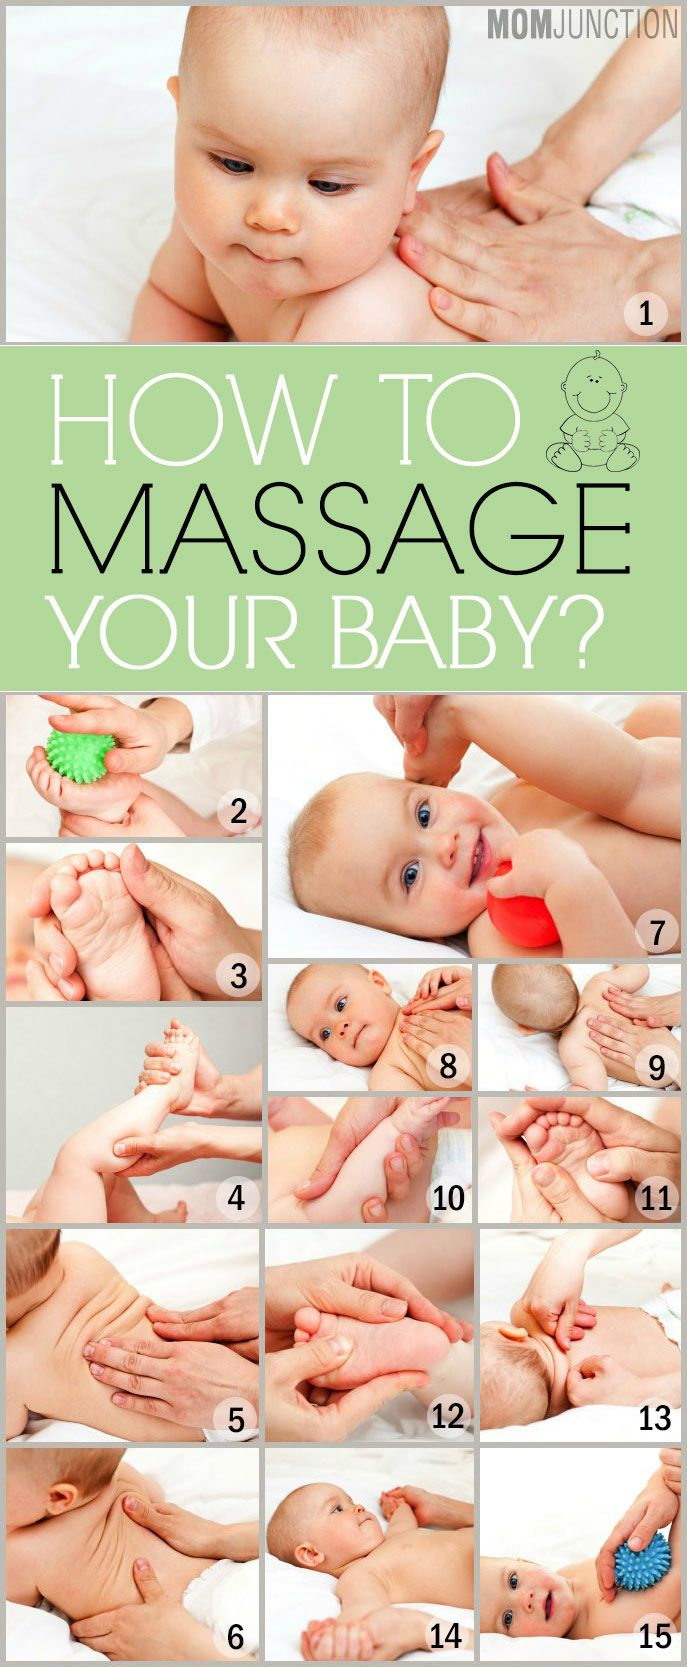 Finding best ways to get closer to your baby? Then baby massage is your answer. Here's how to give a baby massage & how it can help you and your little one.